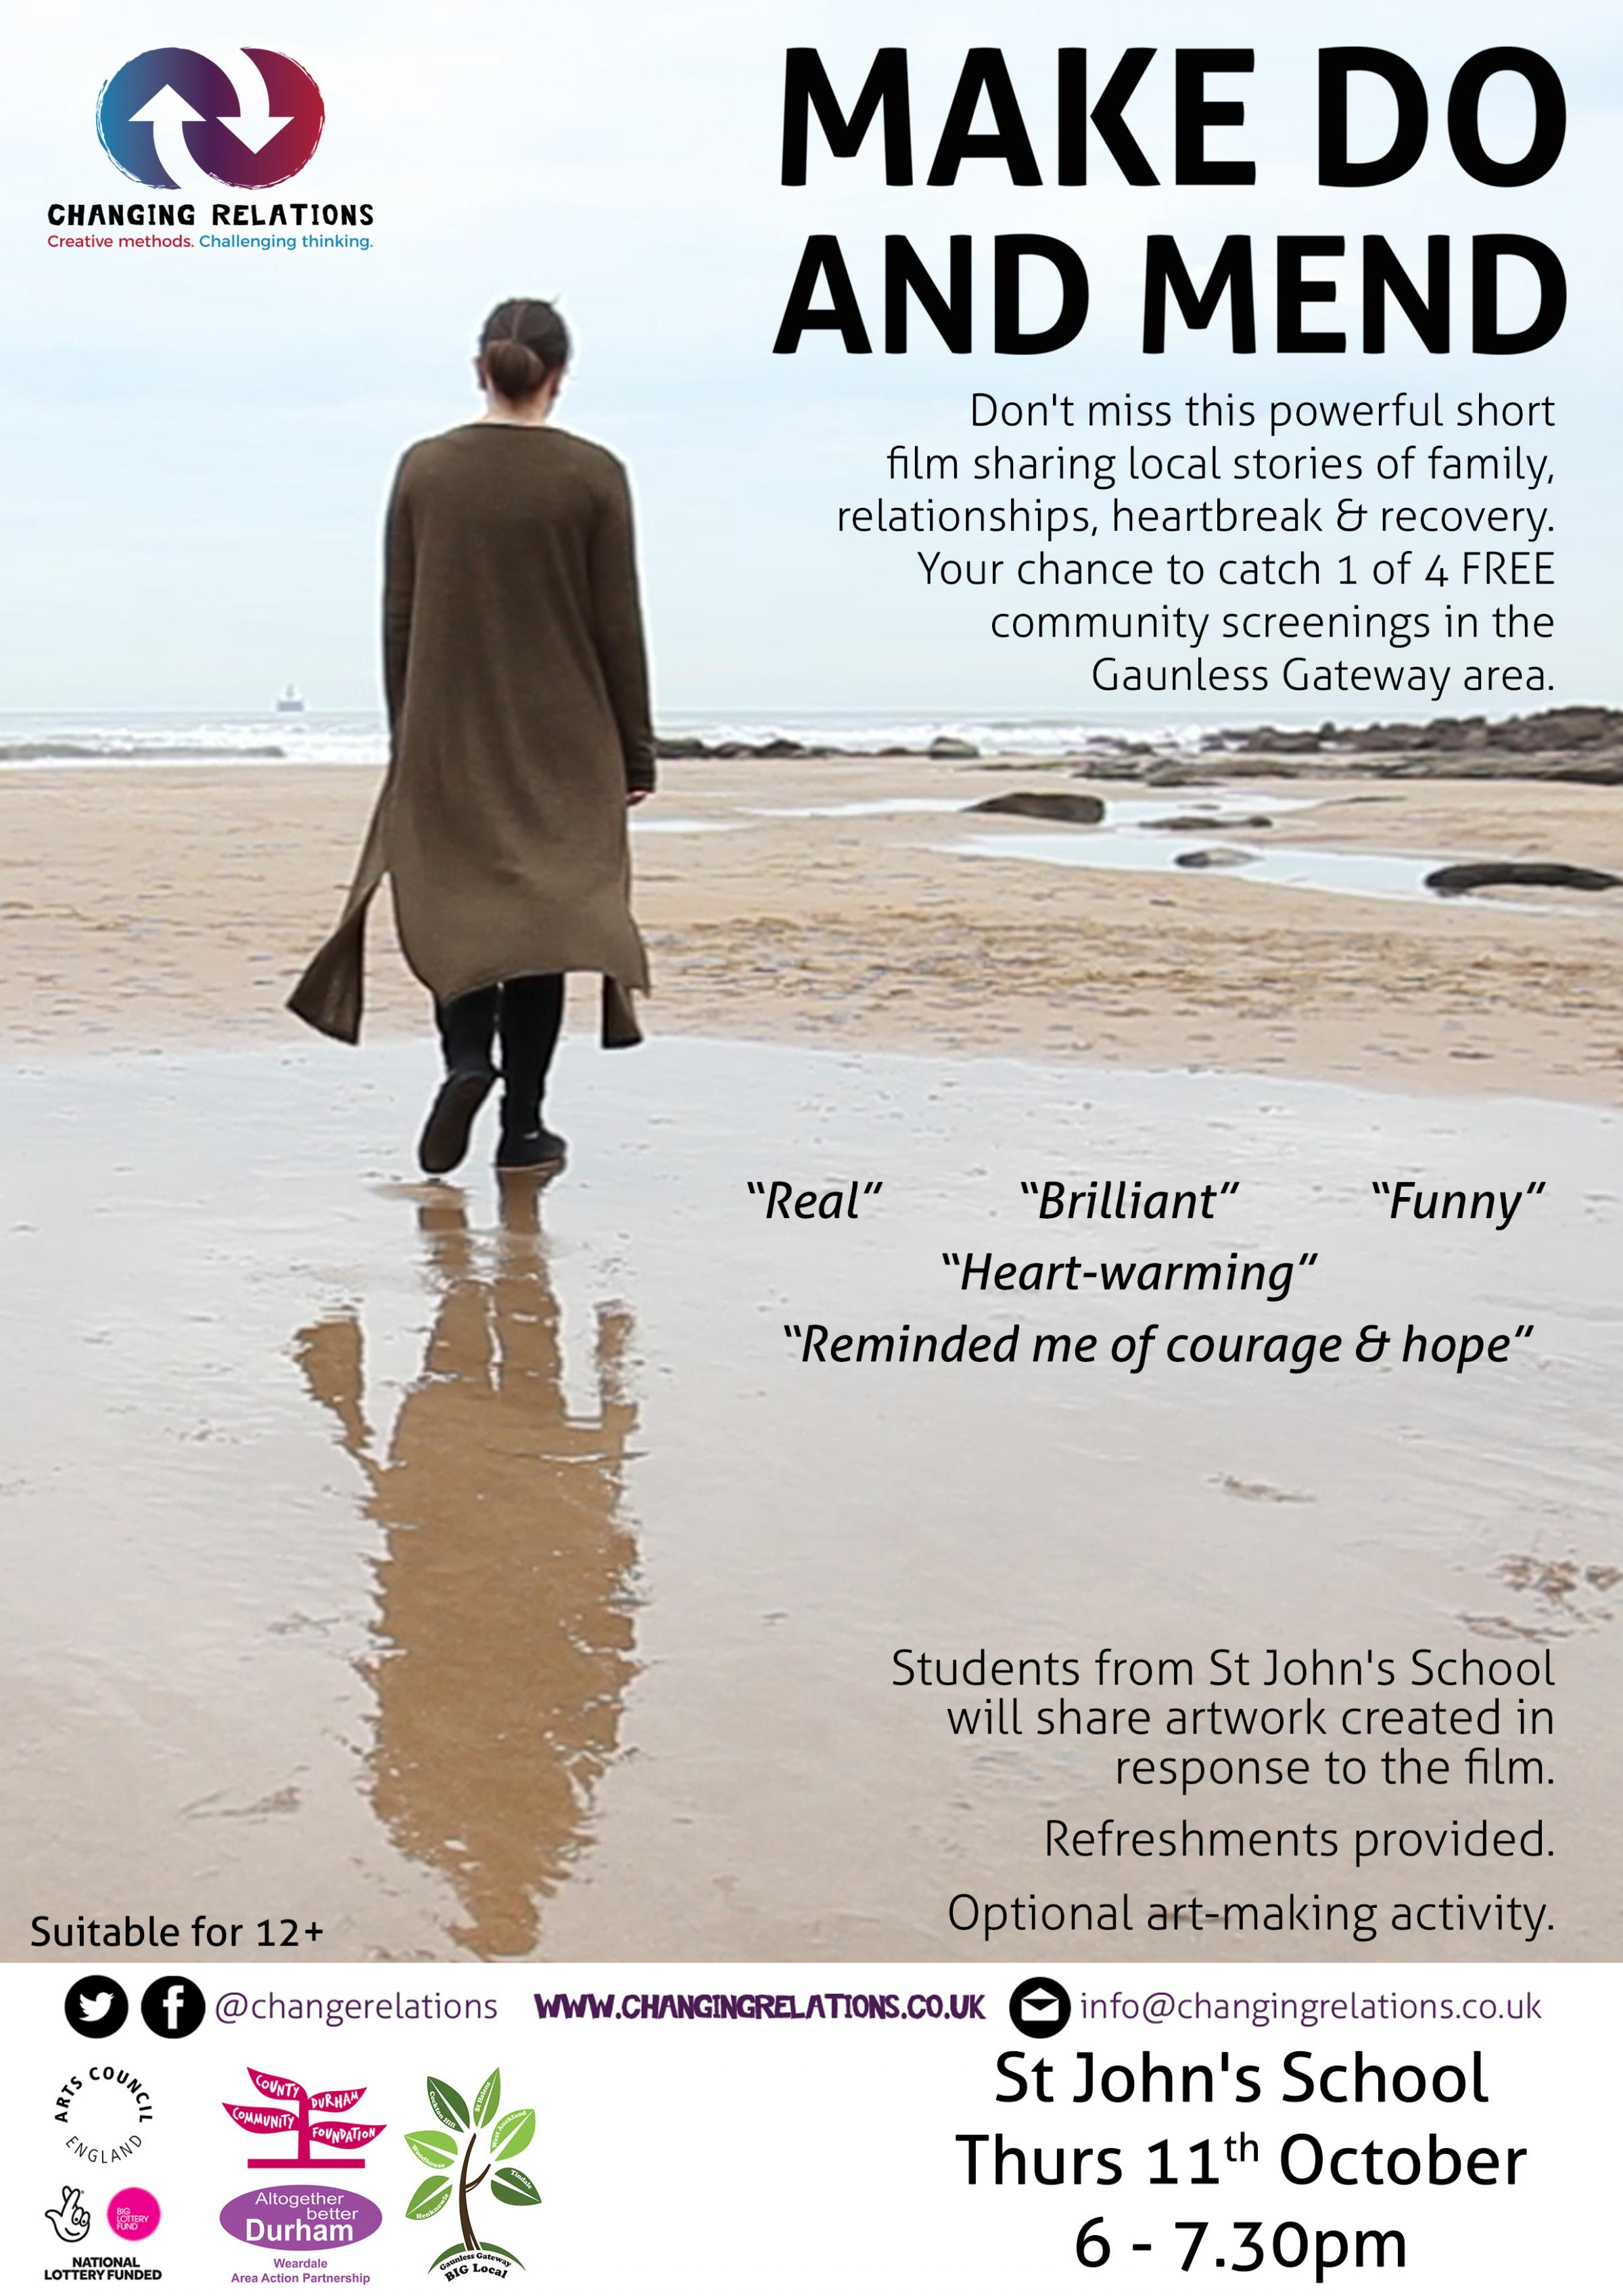 Make Do and Mend, a film about domestic abuse, will be shown at four community venues this month